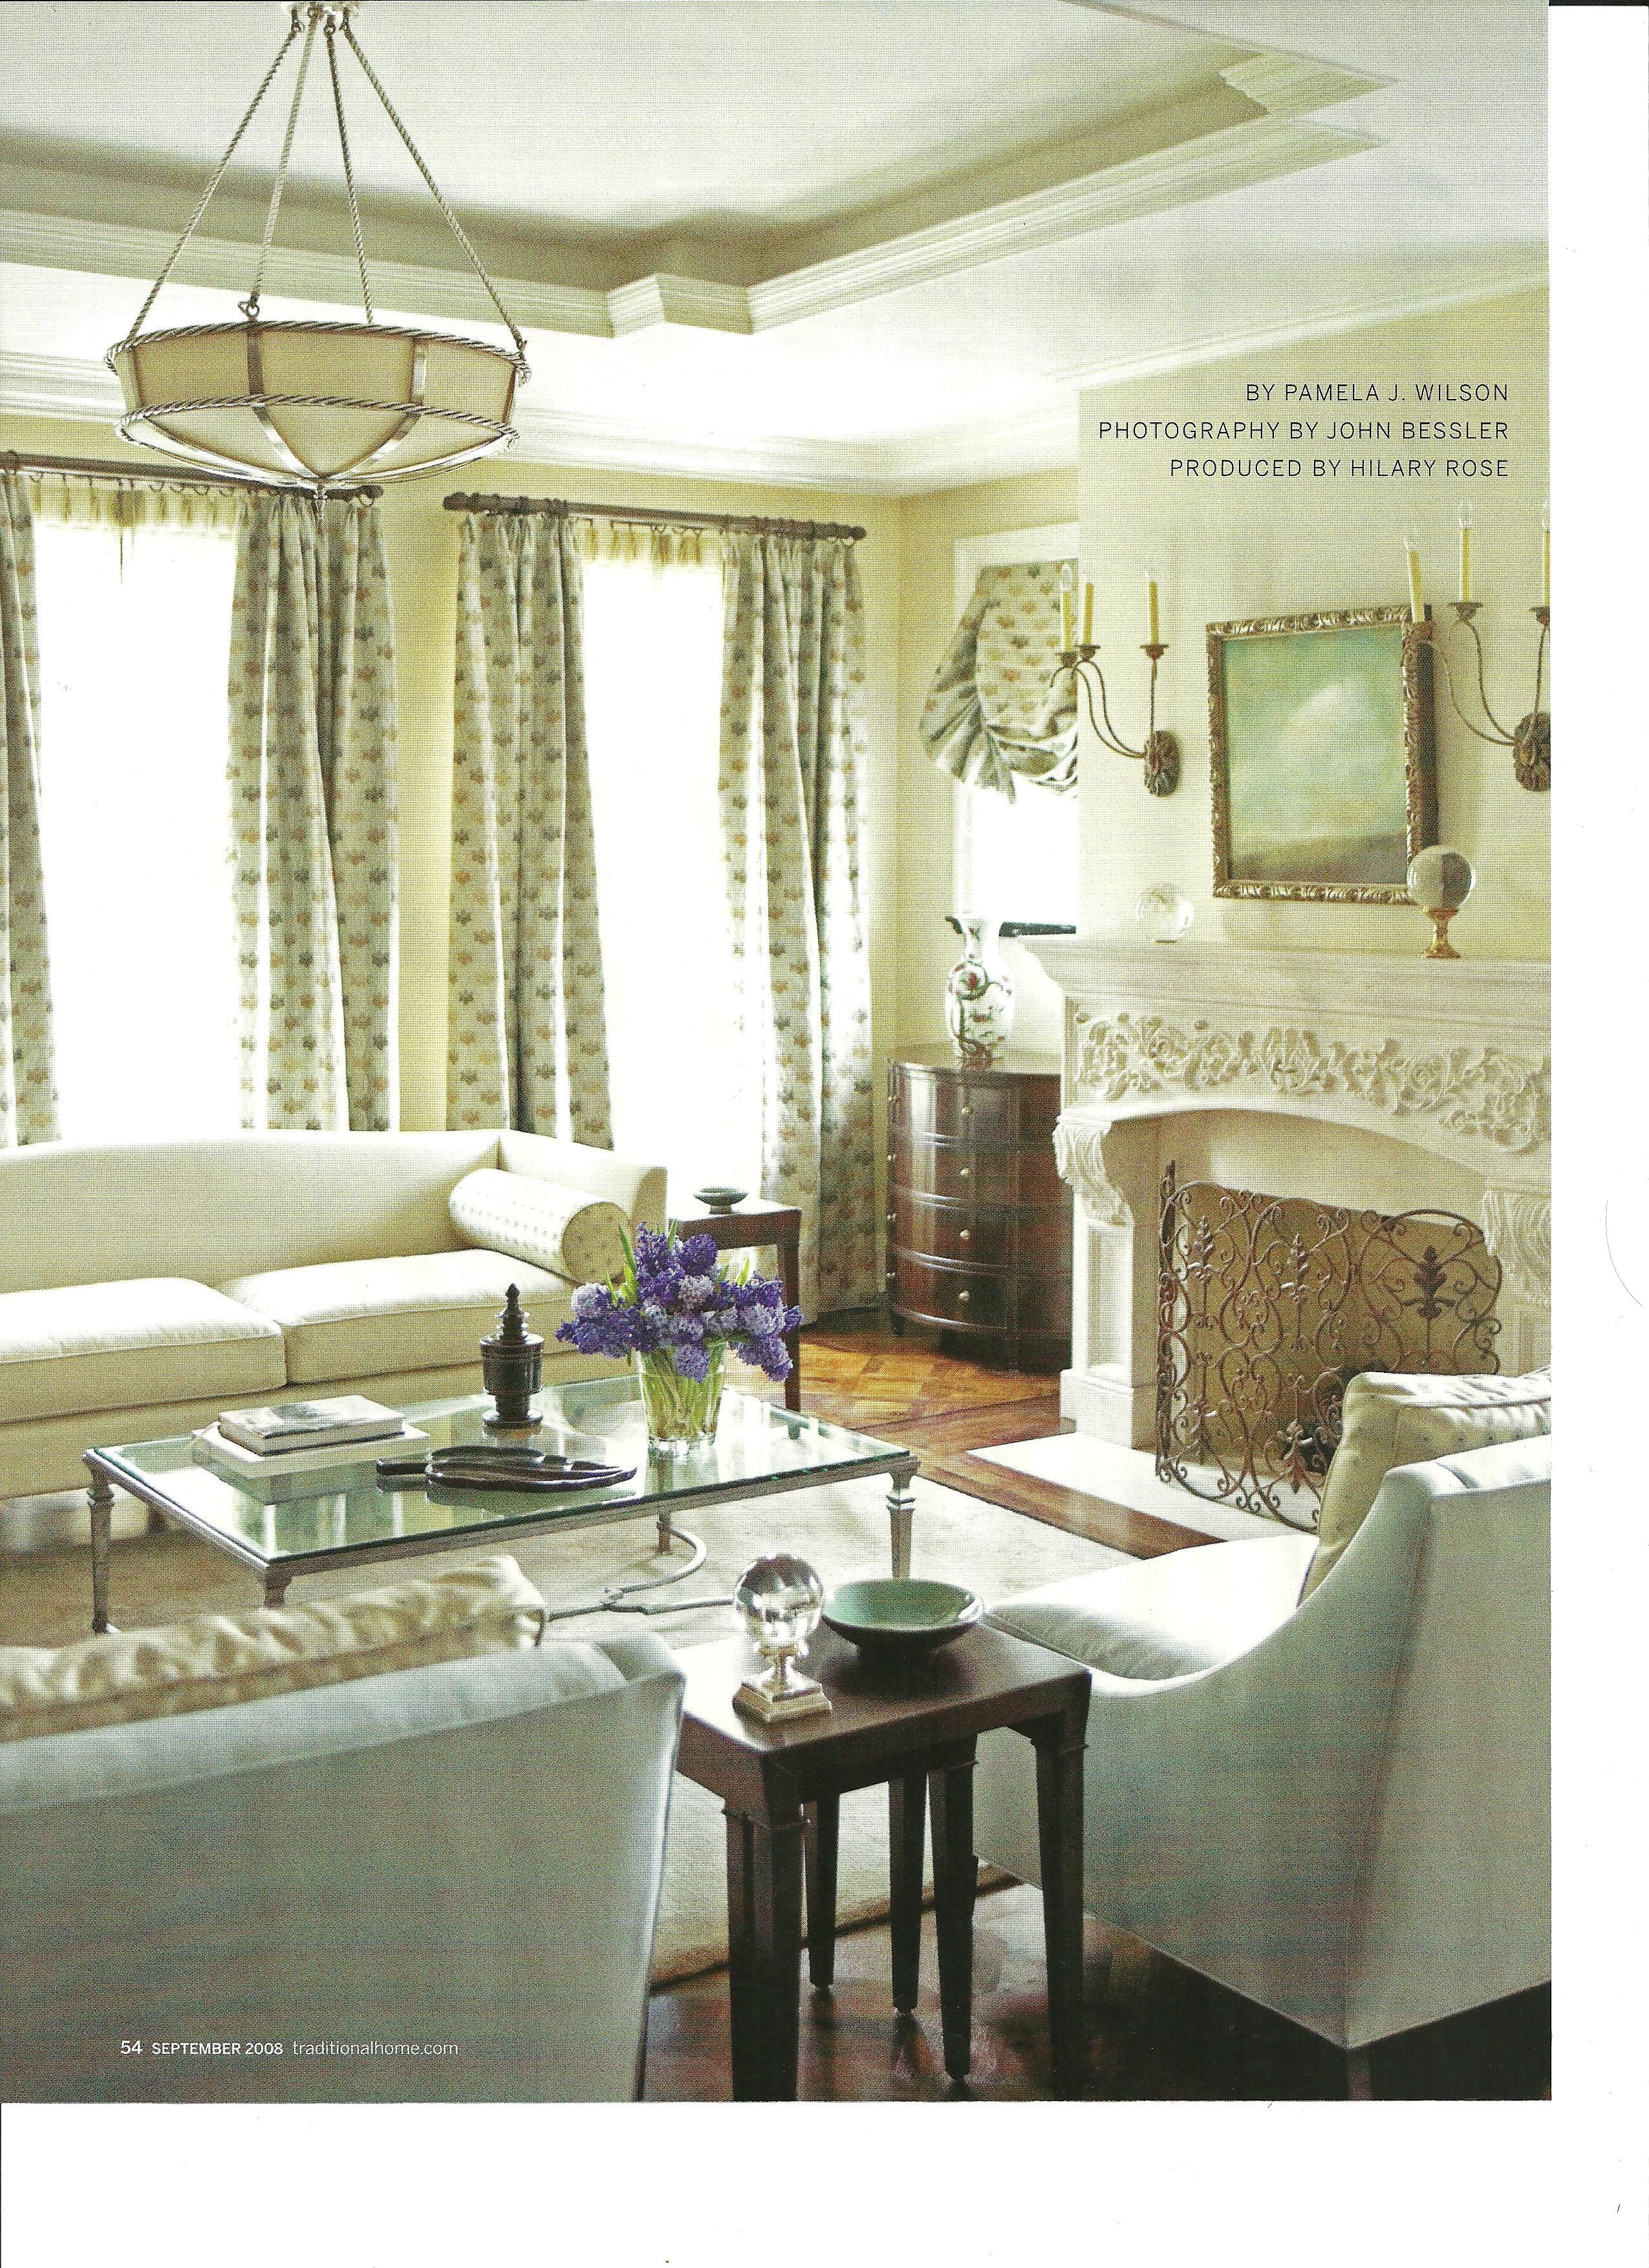 Pin By Danielle Roy On Woven Wood Shades And Drapes Transitional Bathroom Decor Transitional Decor Transitional Living Rooms